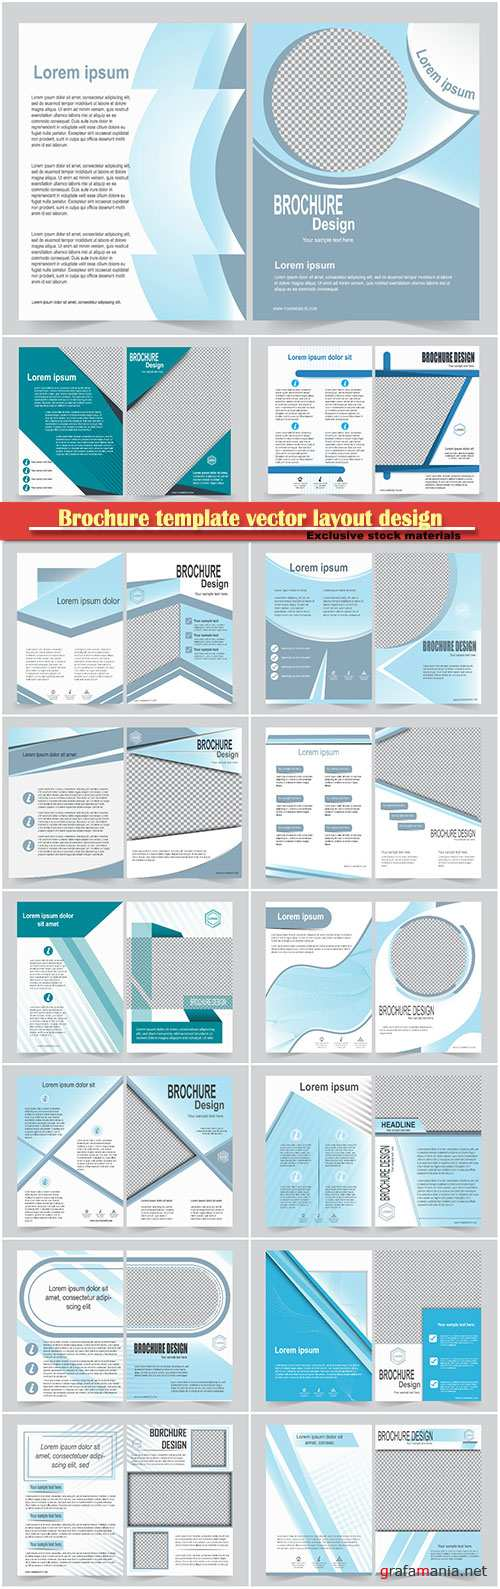 Brochure template vector layout design, corporate business annual report, magazine, flyer mockup # 153